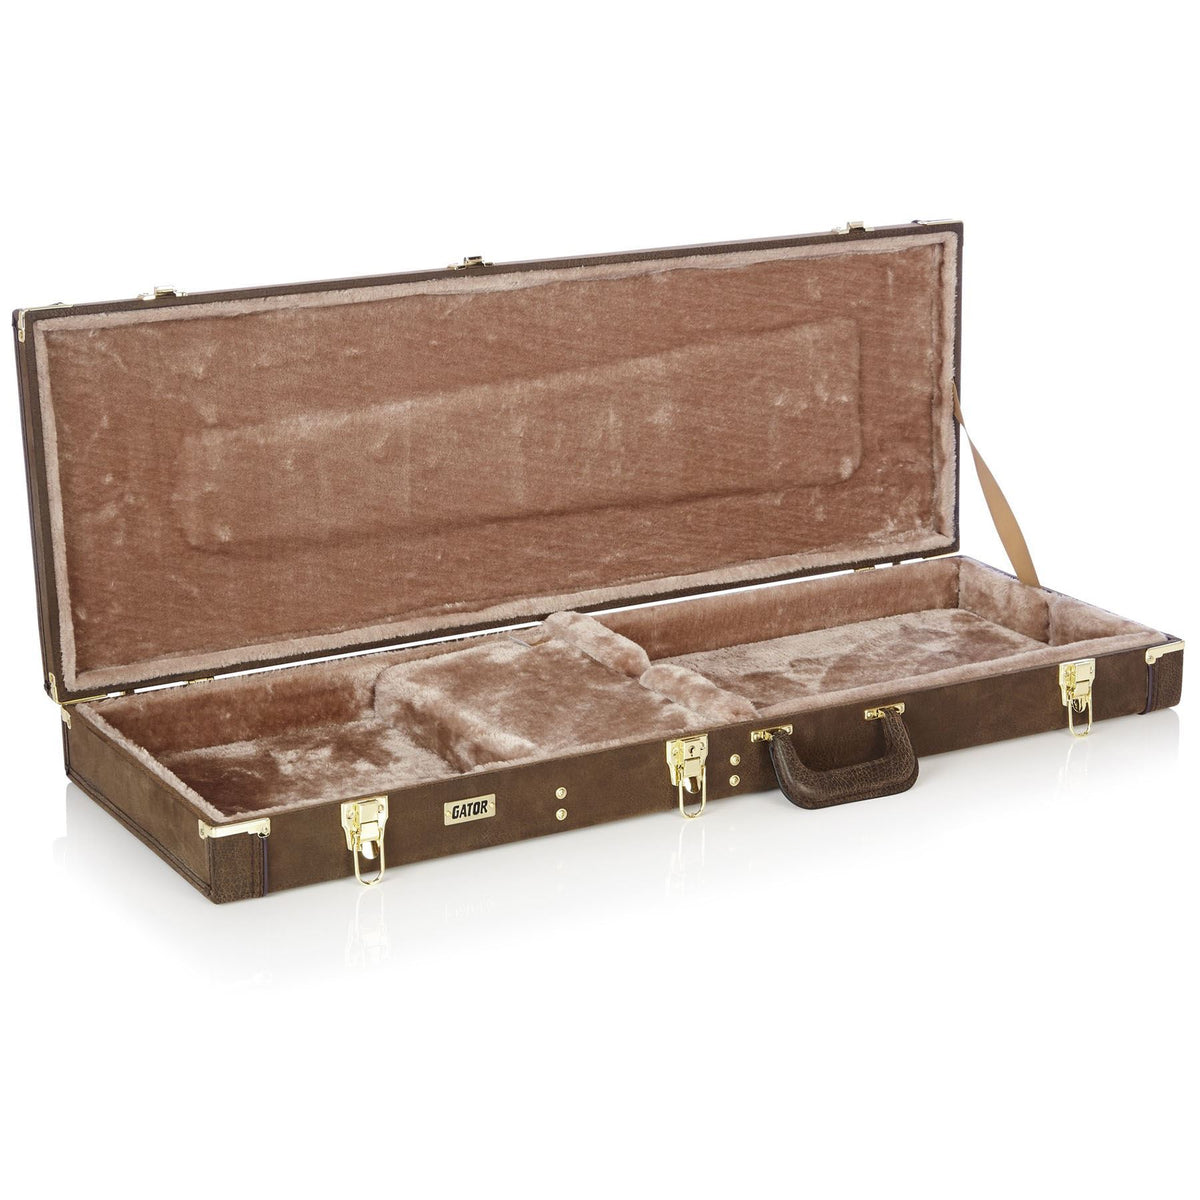 Gator Cases Vintage Brown Case for Ibanez JS1200 Joe Satriani Signature Electric Guitars